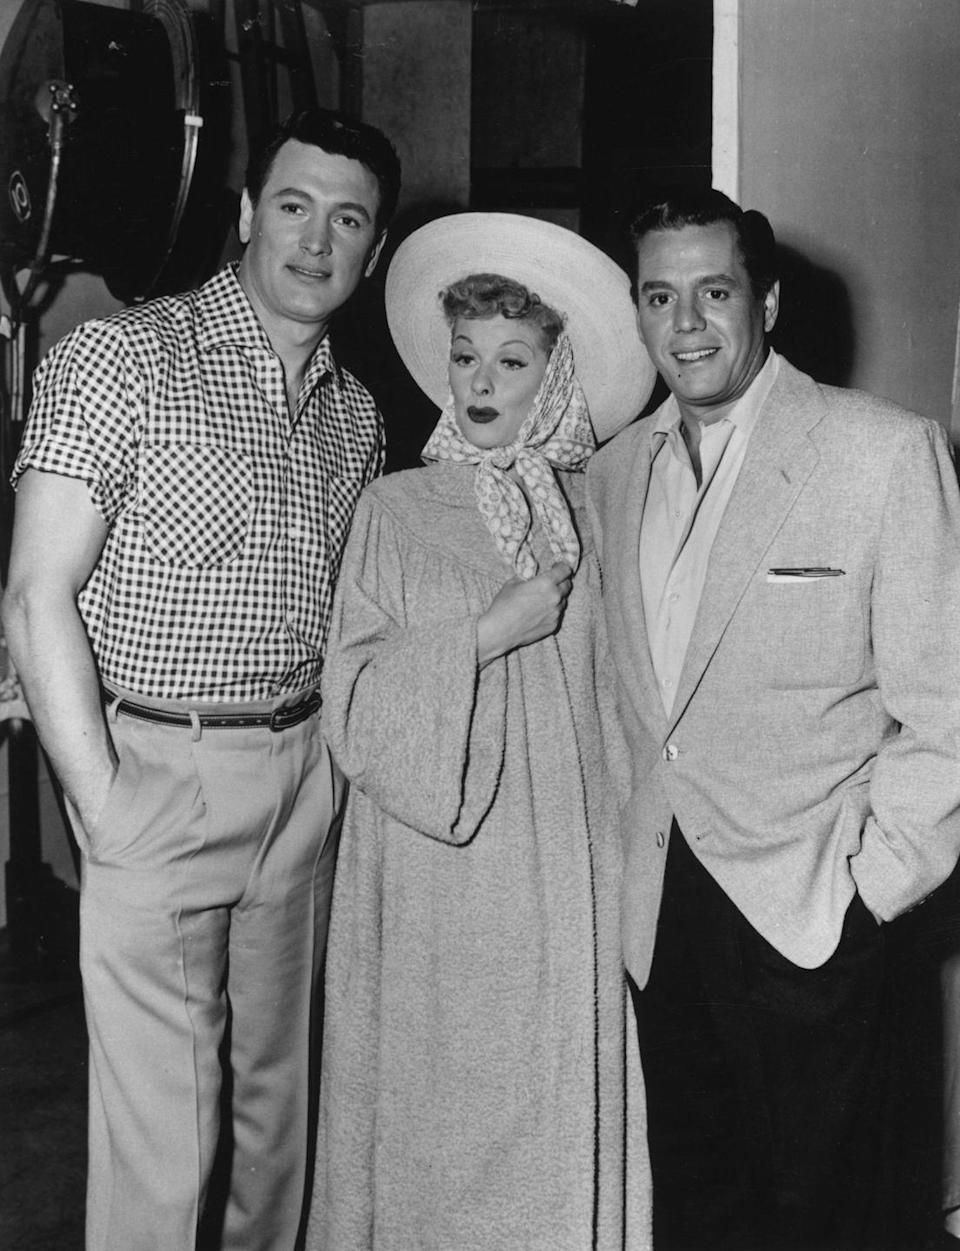 <p>In a star lineup, Hudson posed with Lucille Ball and Desi Arnaz. The pair, of <em>I Love Lucy </em>fame, were some of the most notable comedy icons of the era. </p>